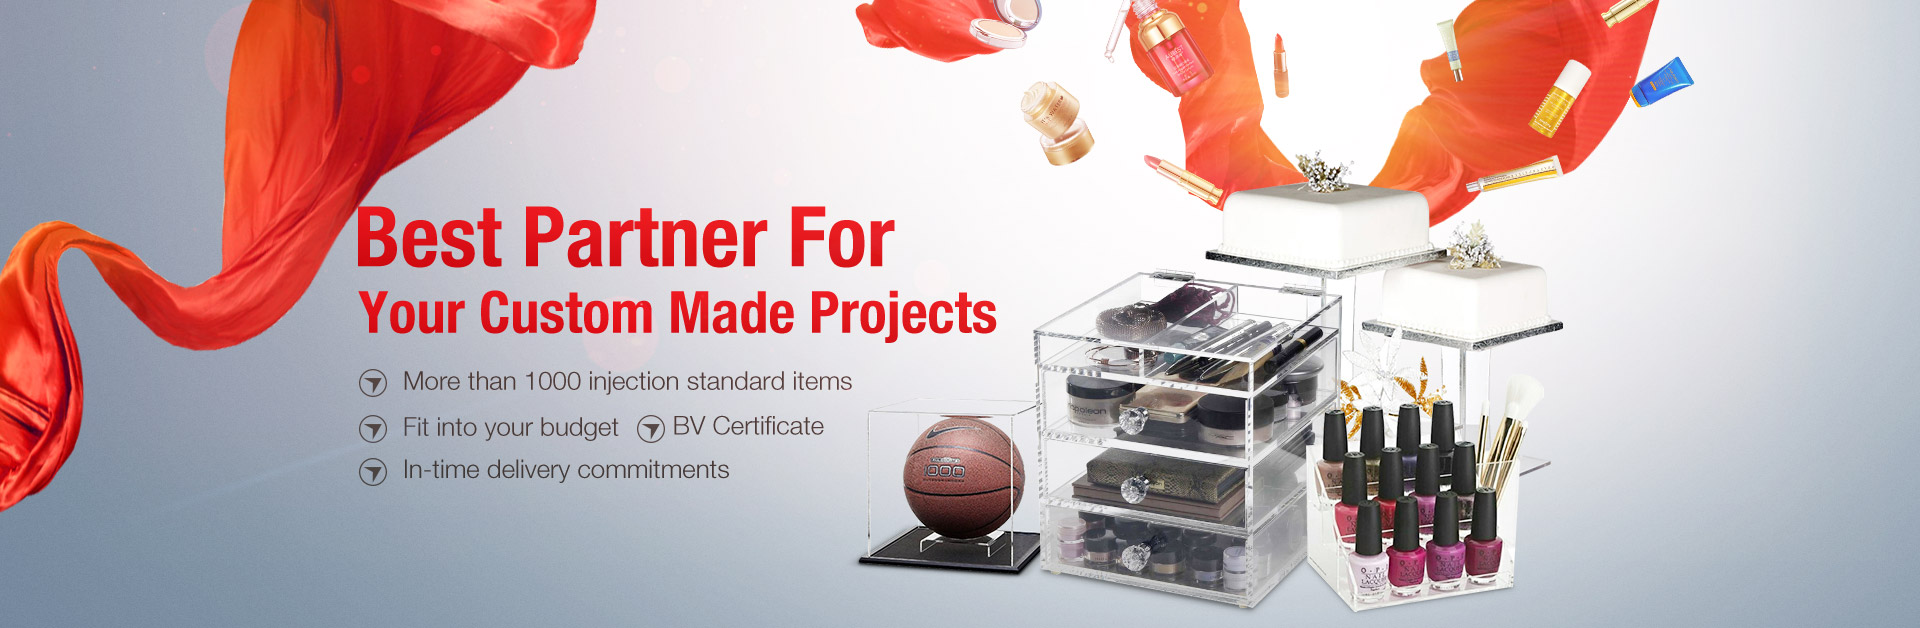 Acrylic Display Stands Manufacturer